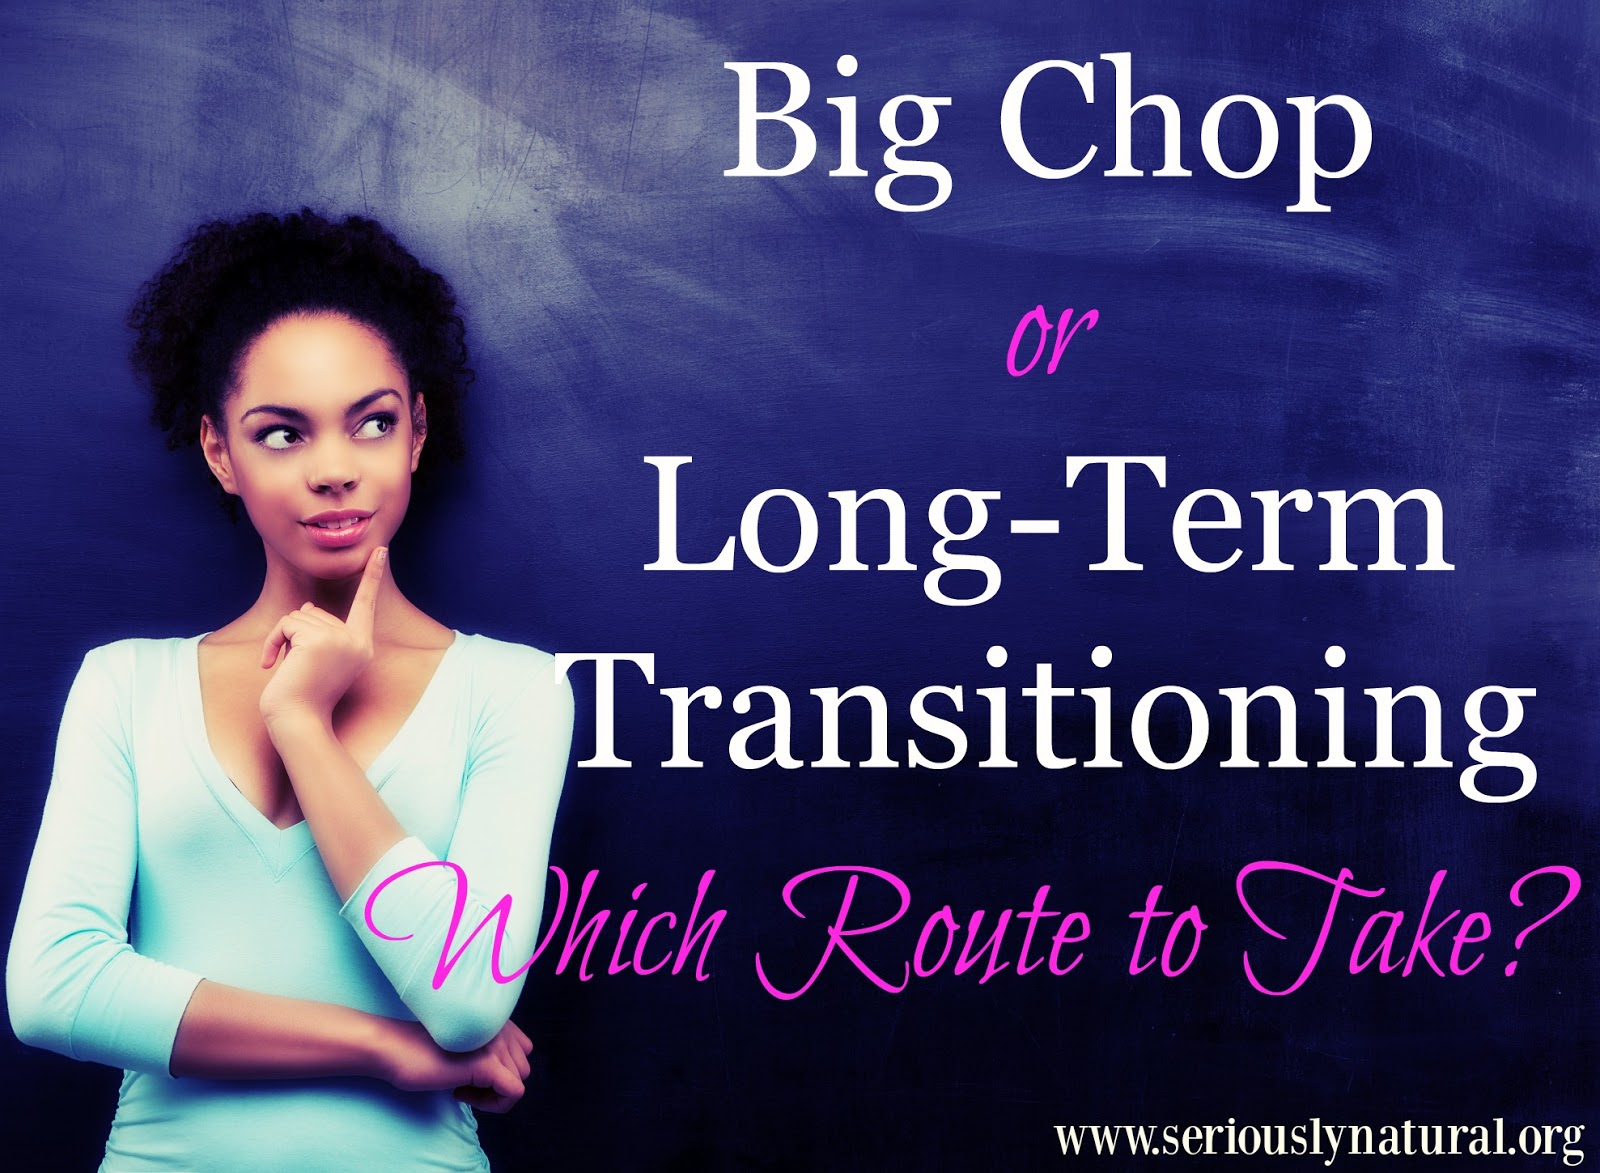 BC or Long-Term Transitioning - Which Route to Take?